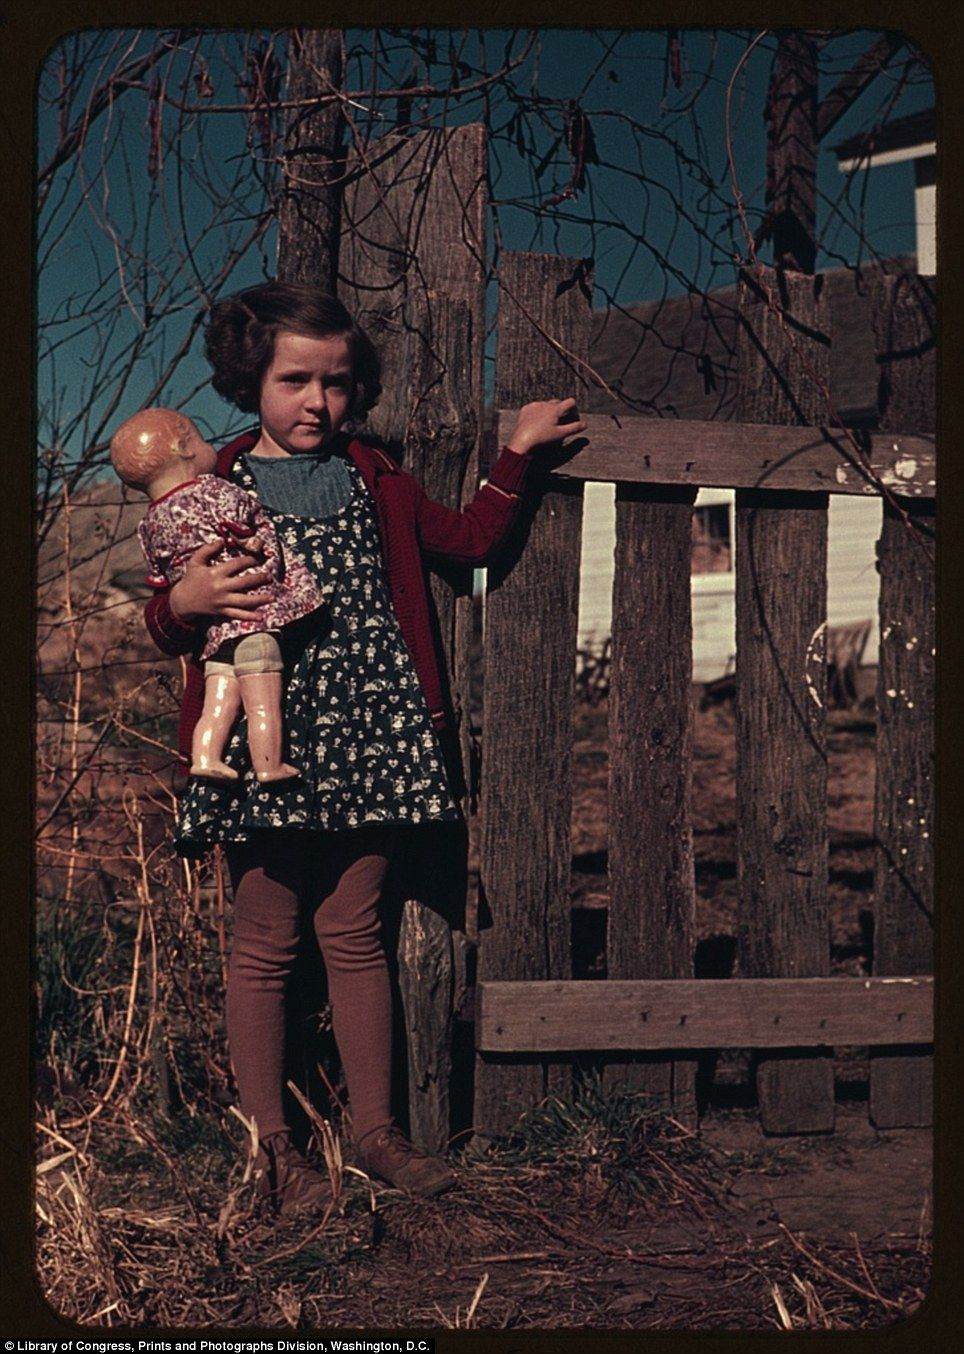 Bleak: This photo of a little girl clutching her doll, taken between 1941 and 1942, is a powerful image about showing desolation in parts of rural America at the time